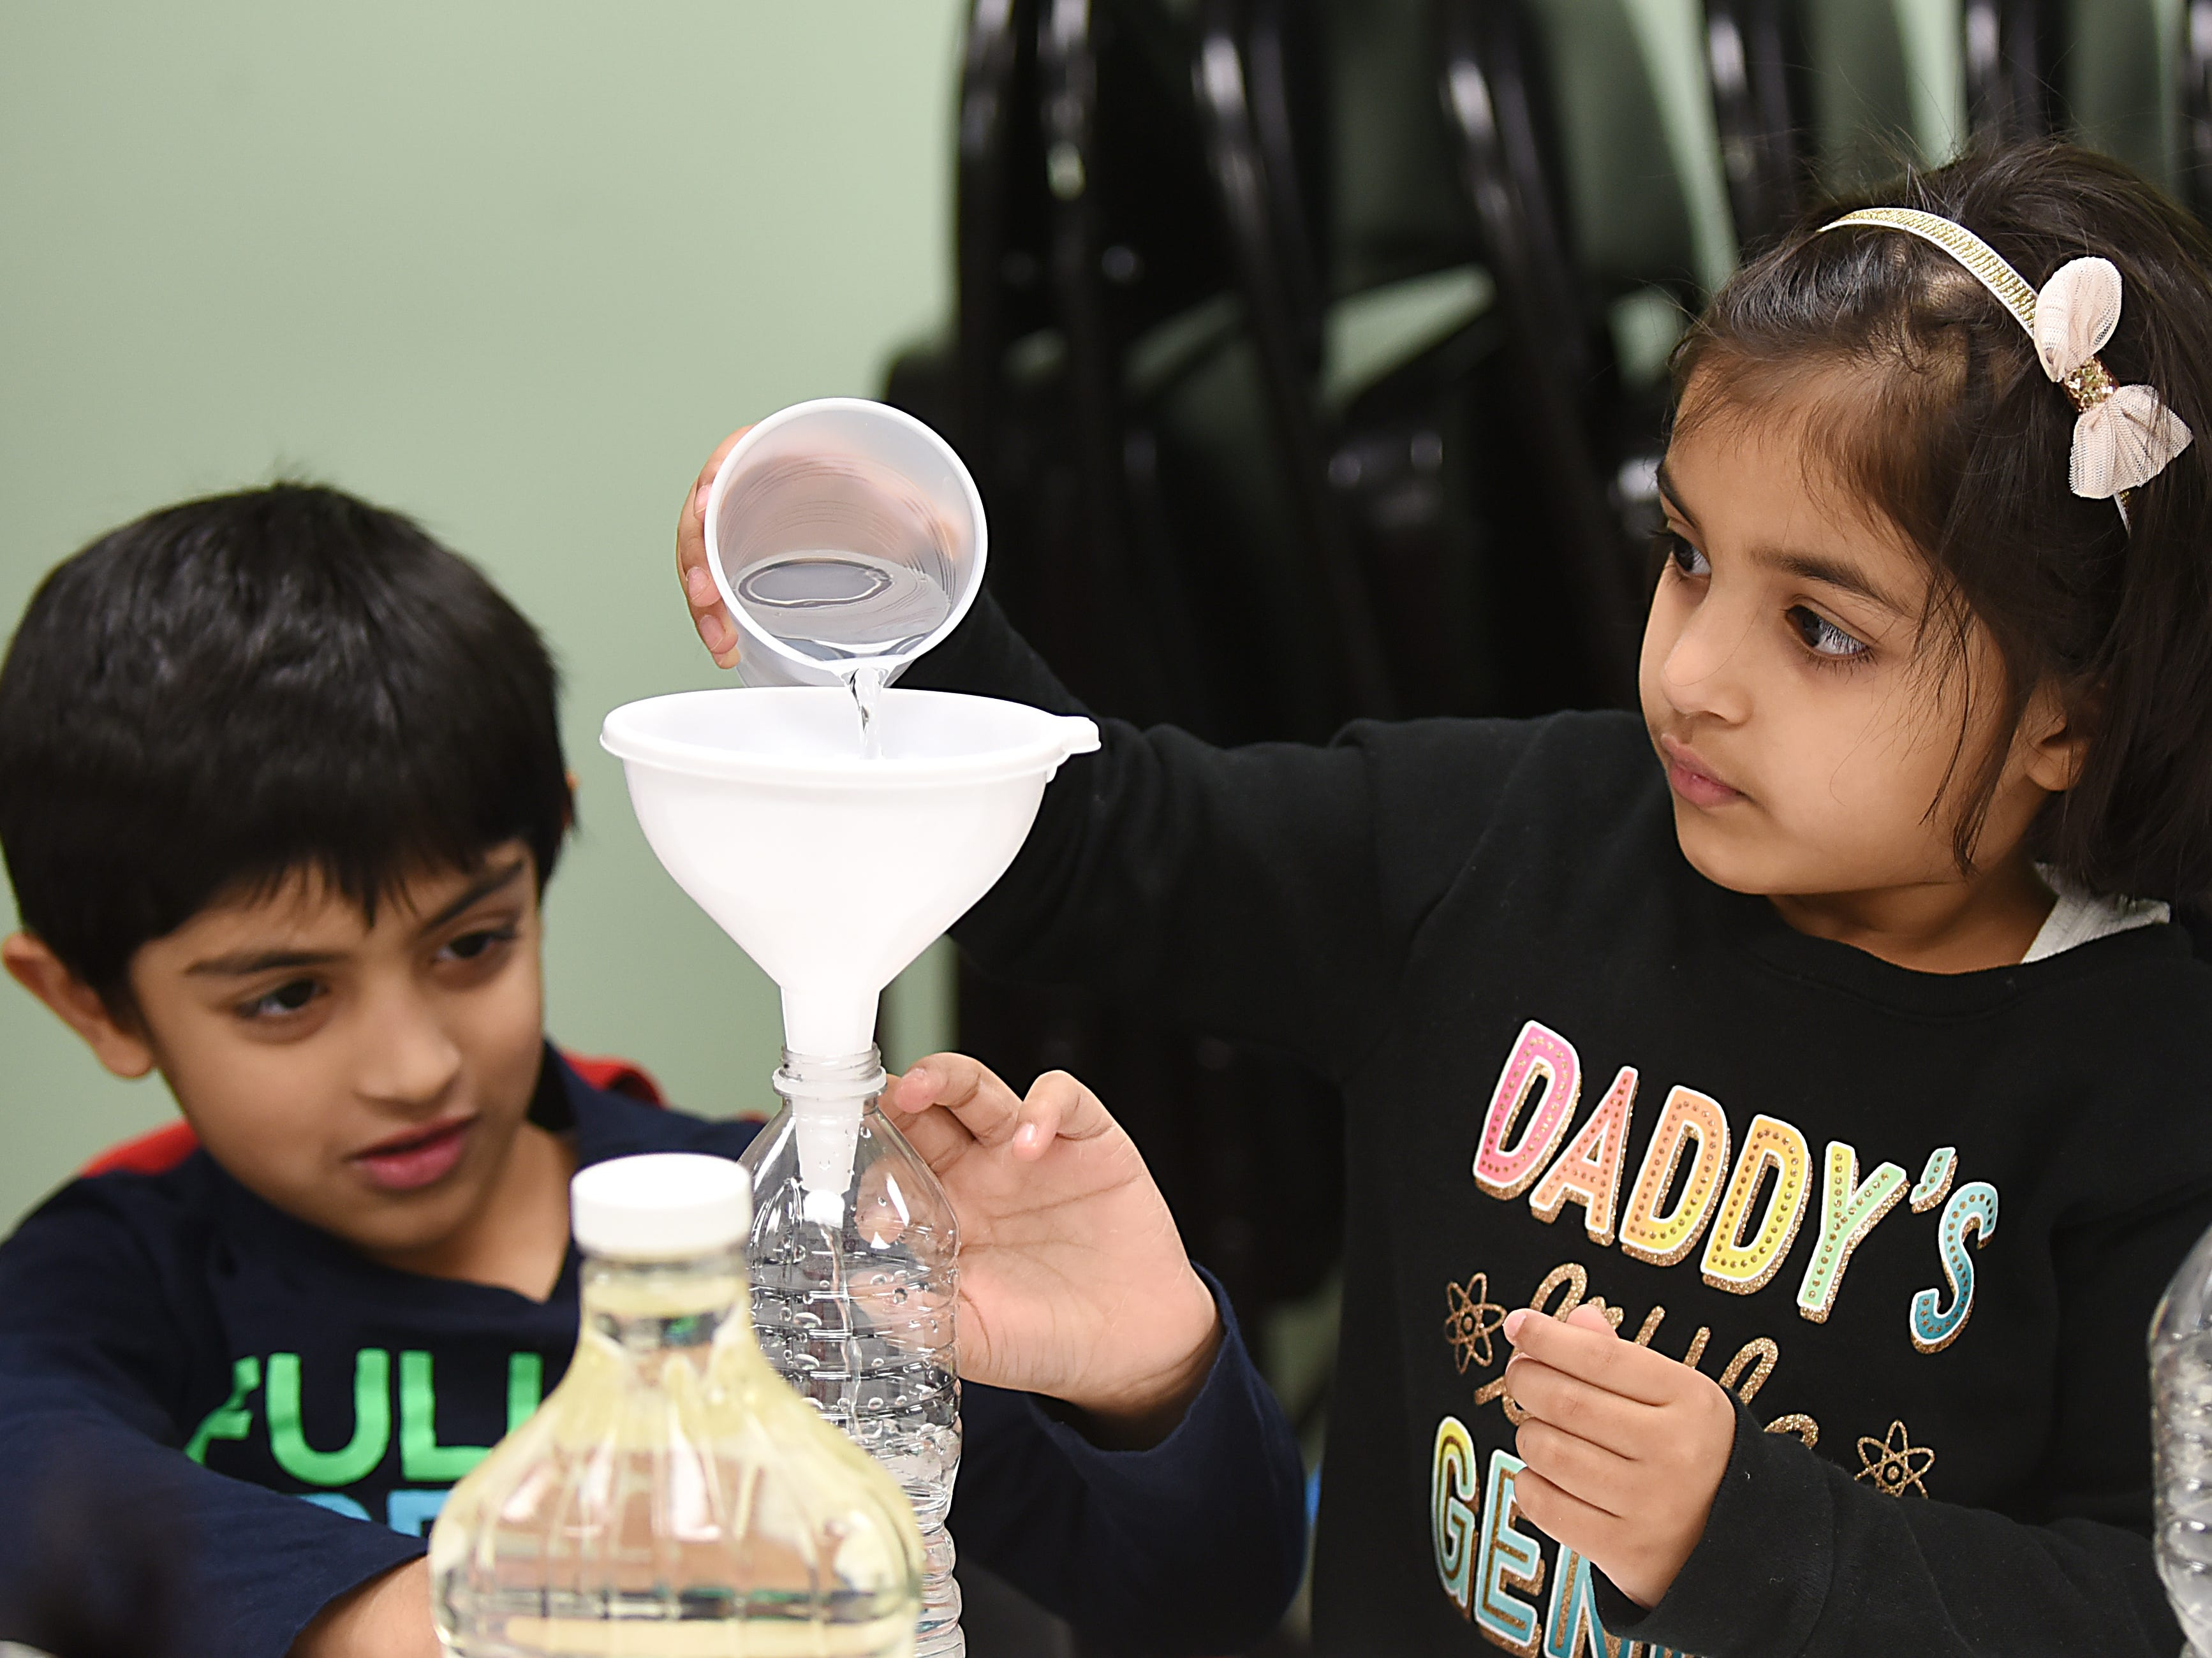 Children make a snowstorm in a bottle as part of the STEM Saturday series at East Rutherford Memorial Library on Saturday January 12, 2019. Rayoyau Jaweid, 5 and Areebah Jaweid, 4 pour water into a bottle.